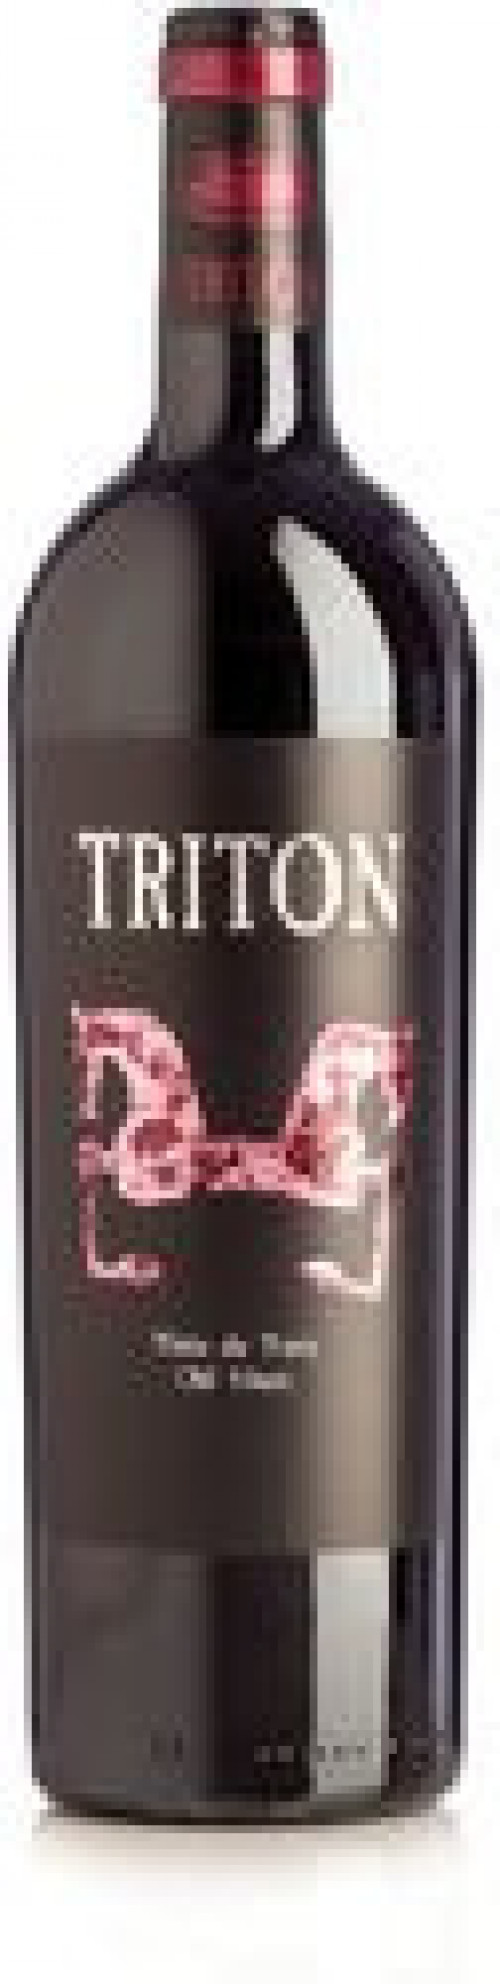 Triton Tinta De Toro Old Vines 750ml